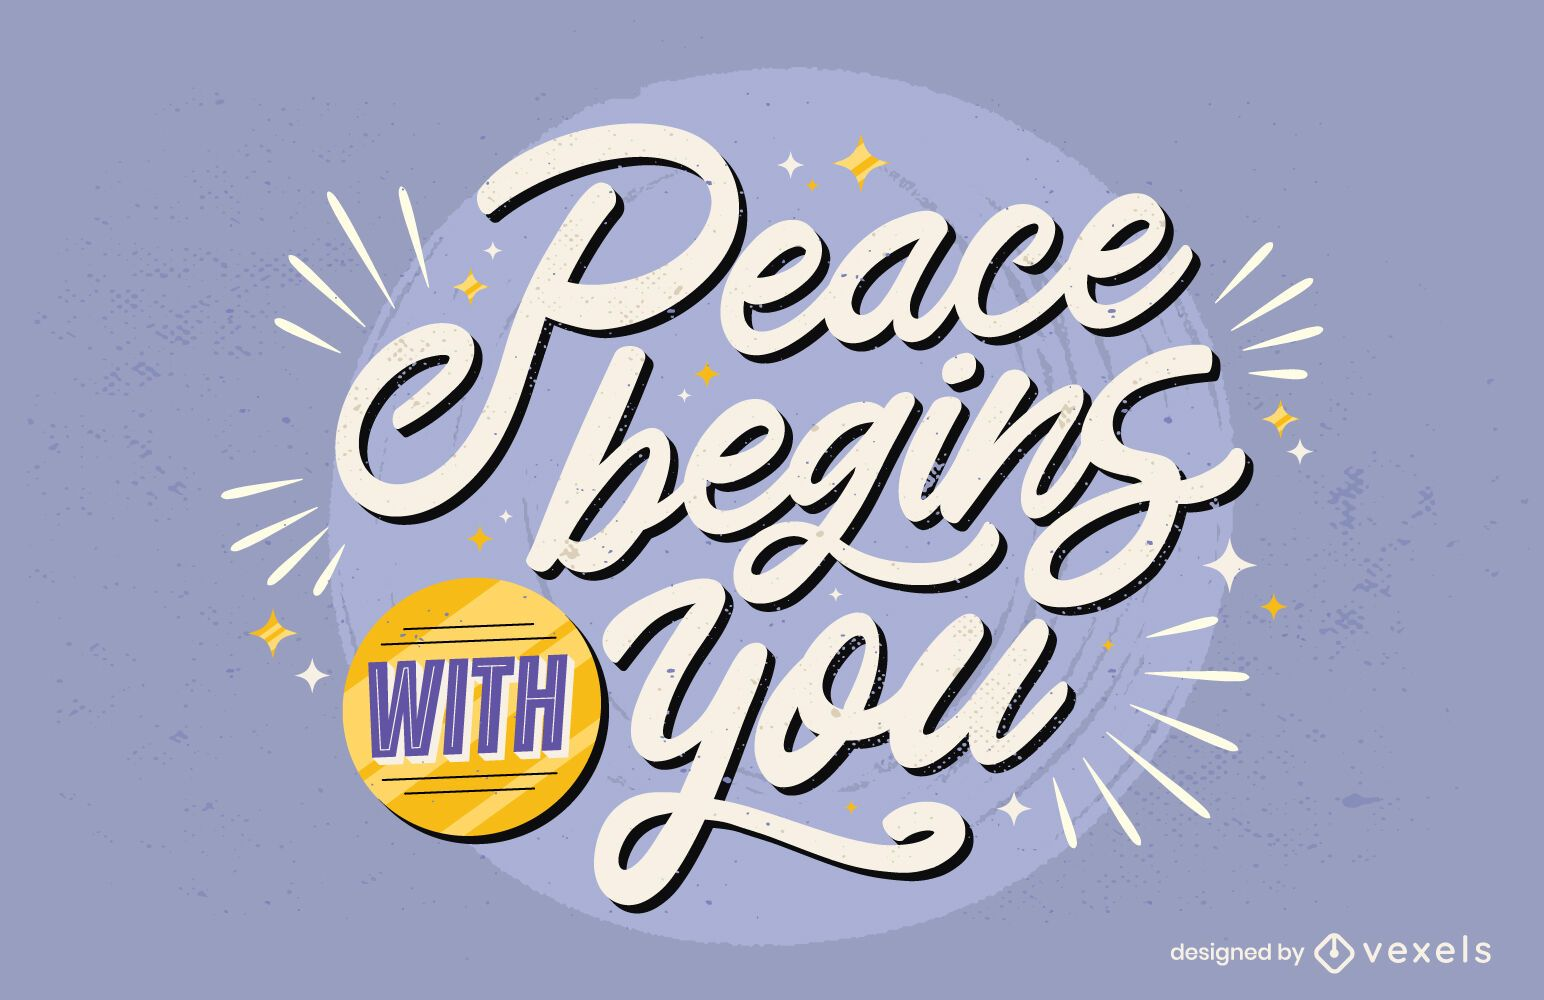 Peace begins with you lettering